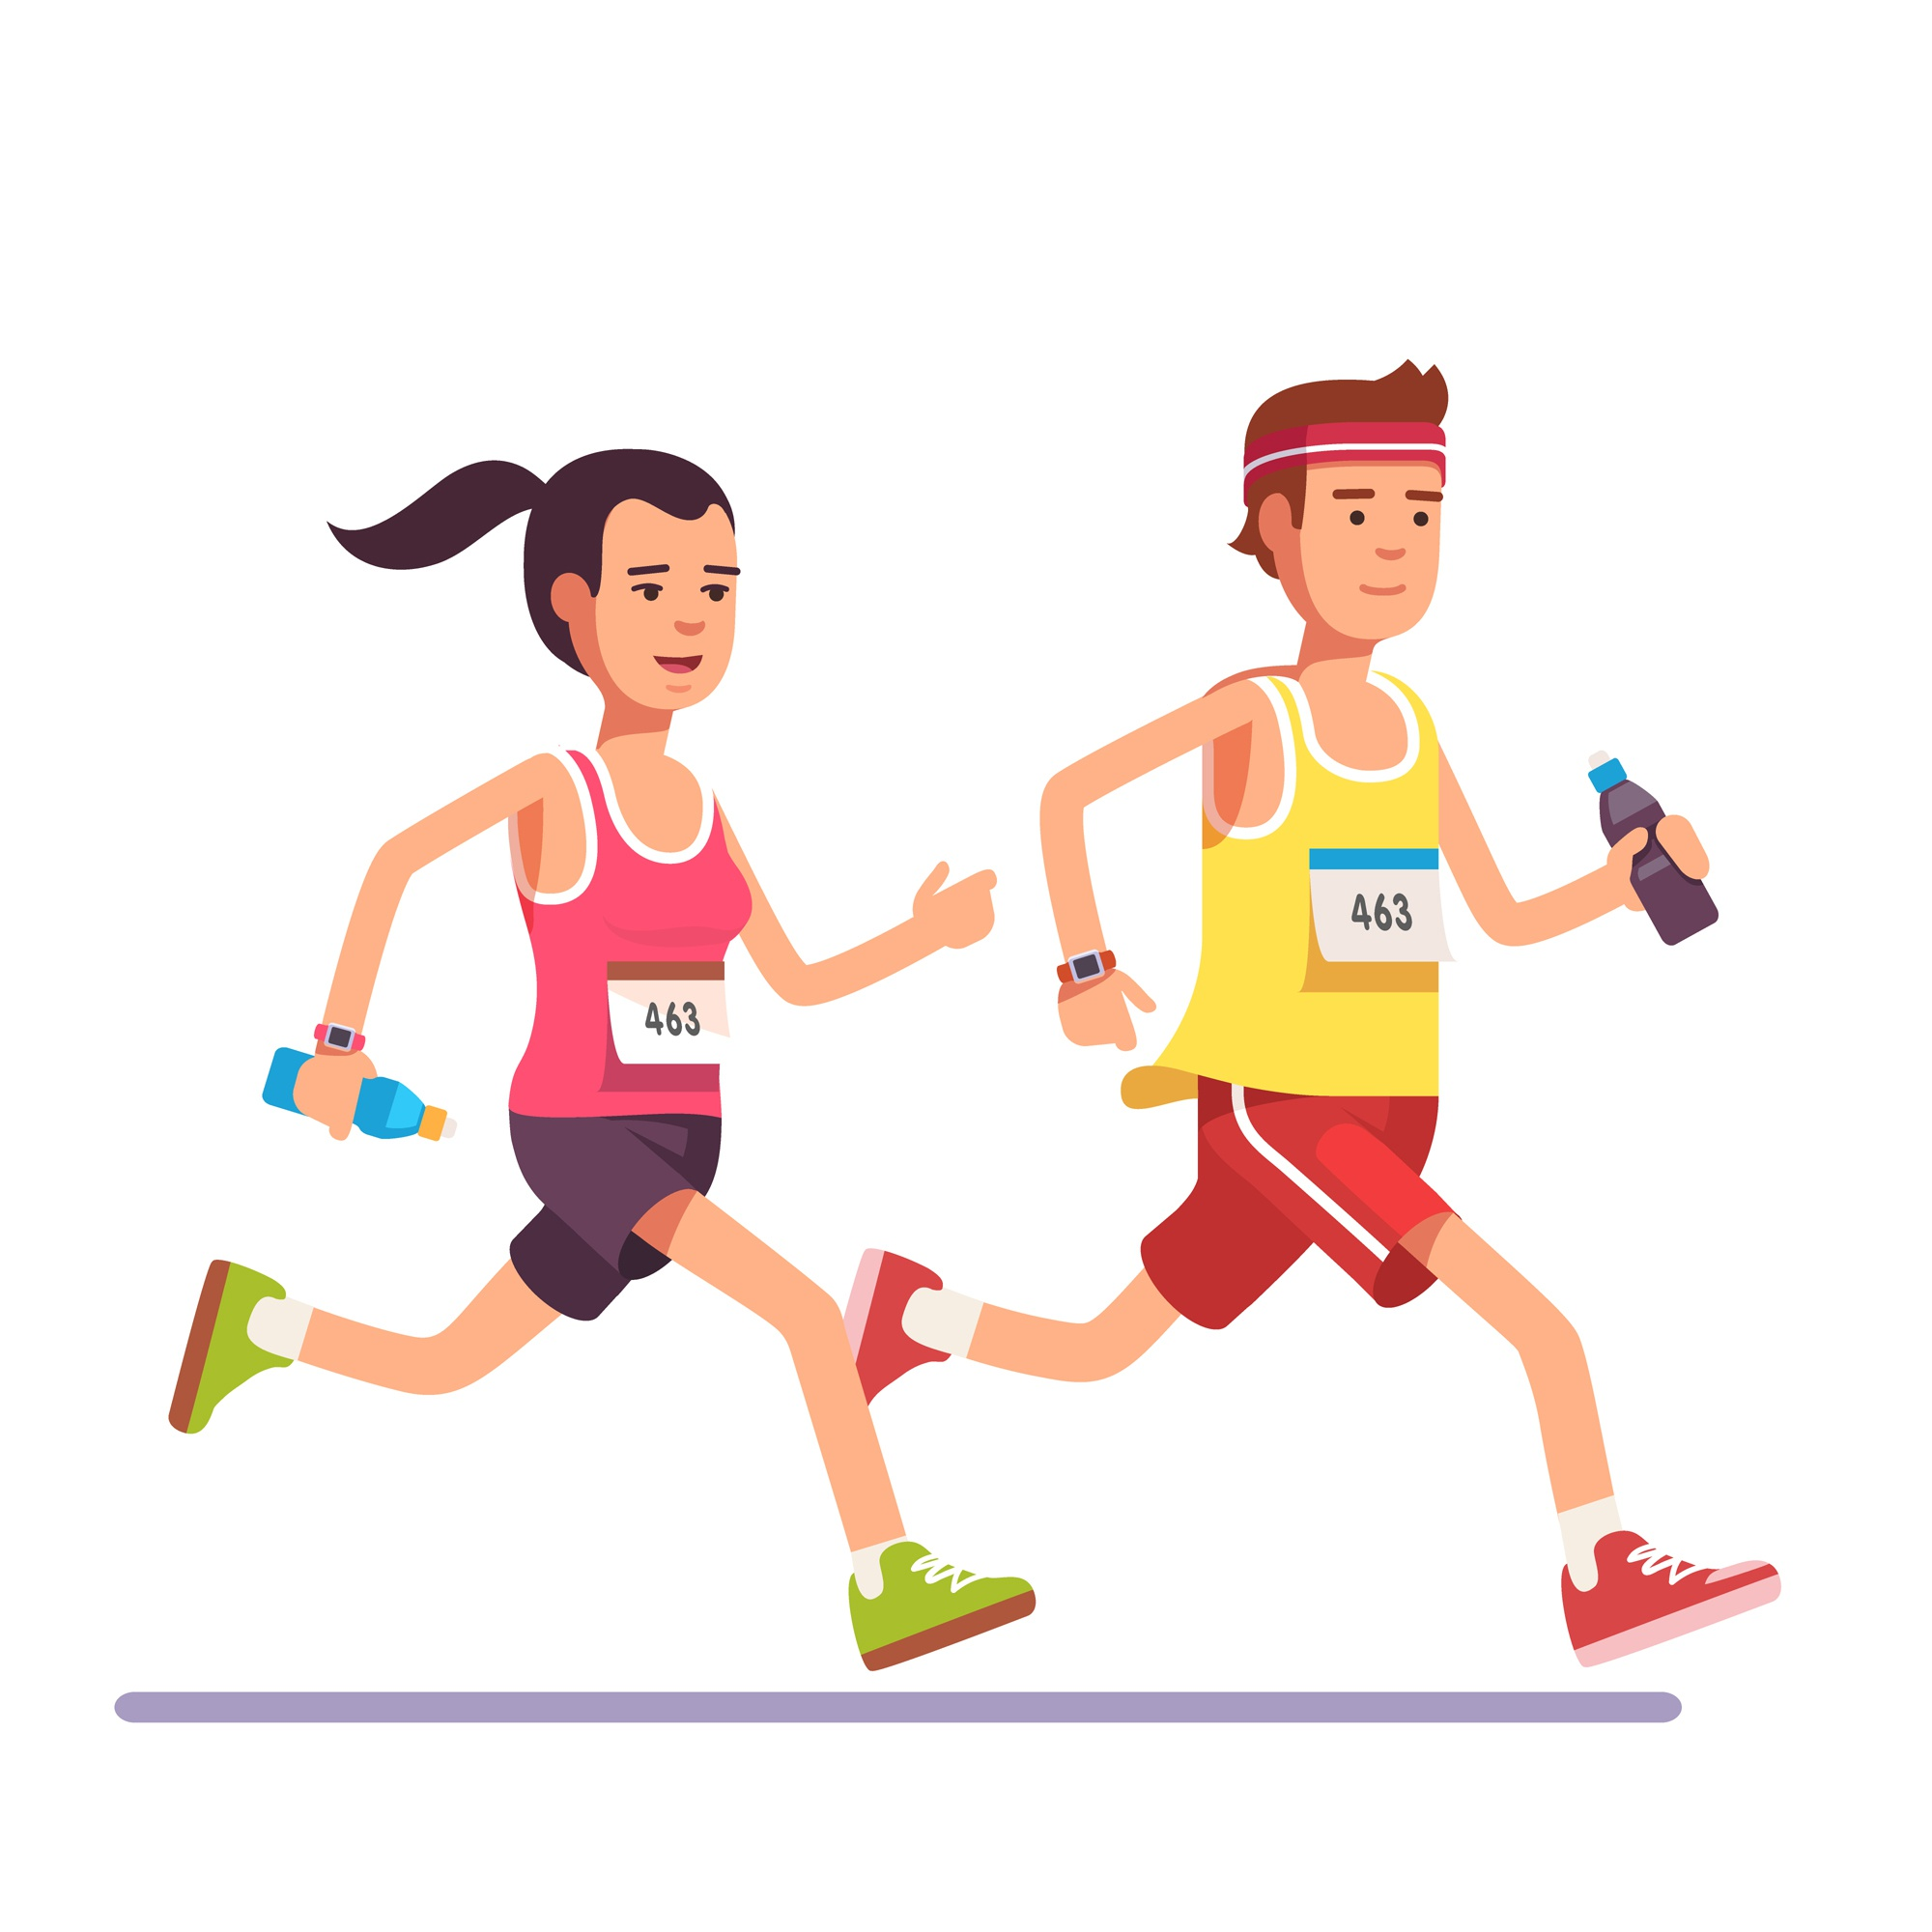 Fit couple running a marathon together